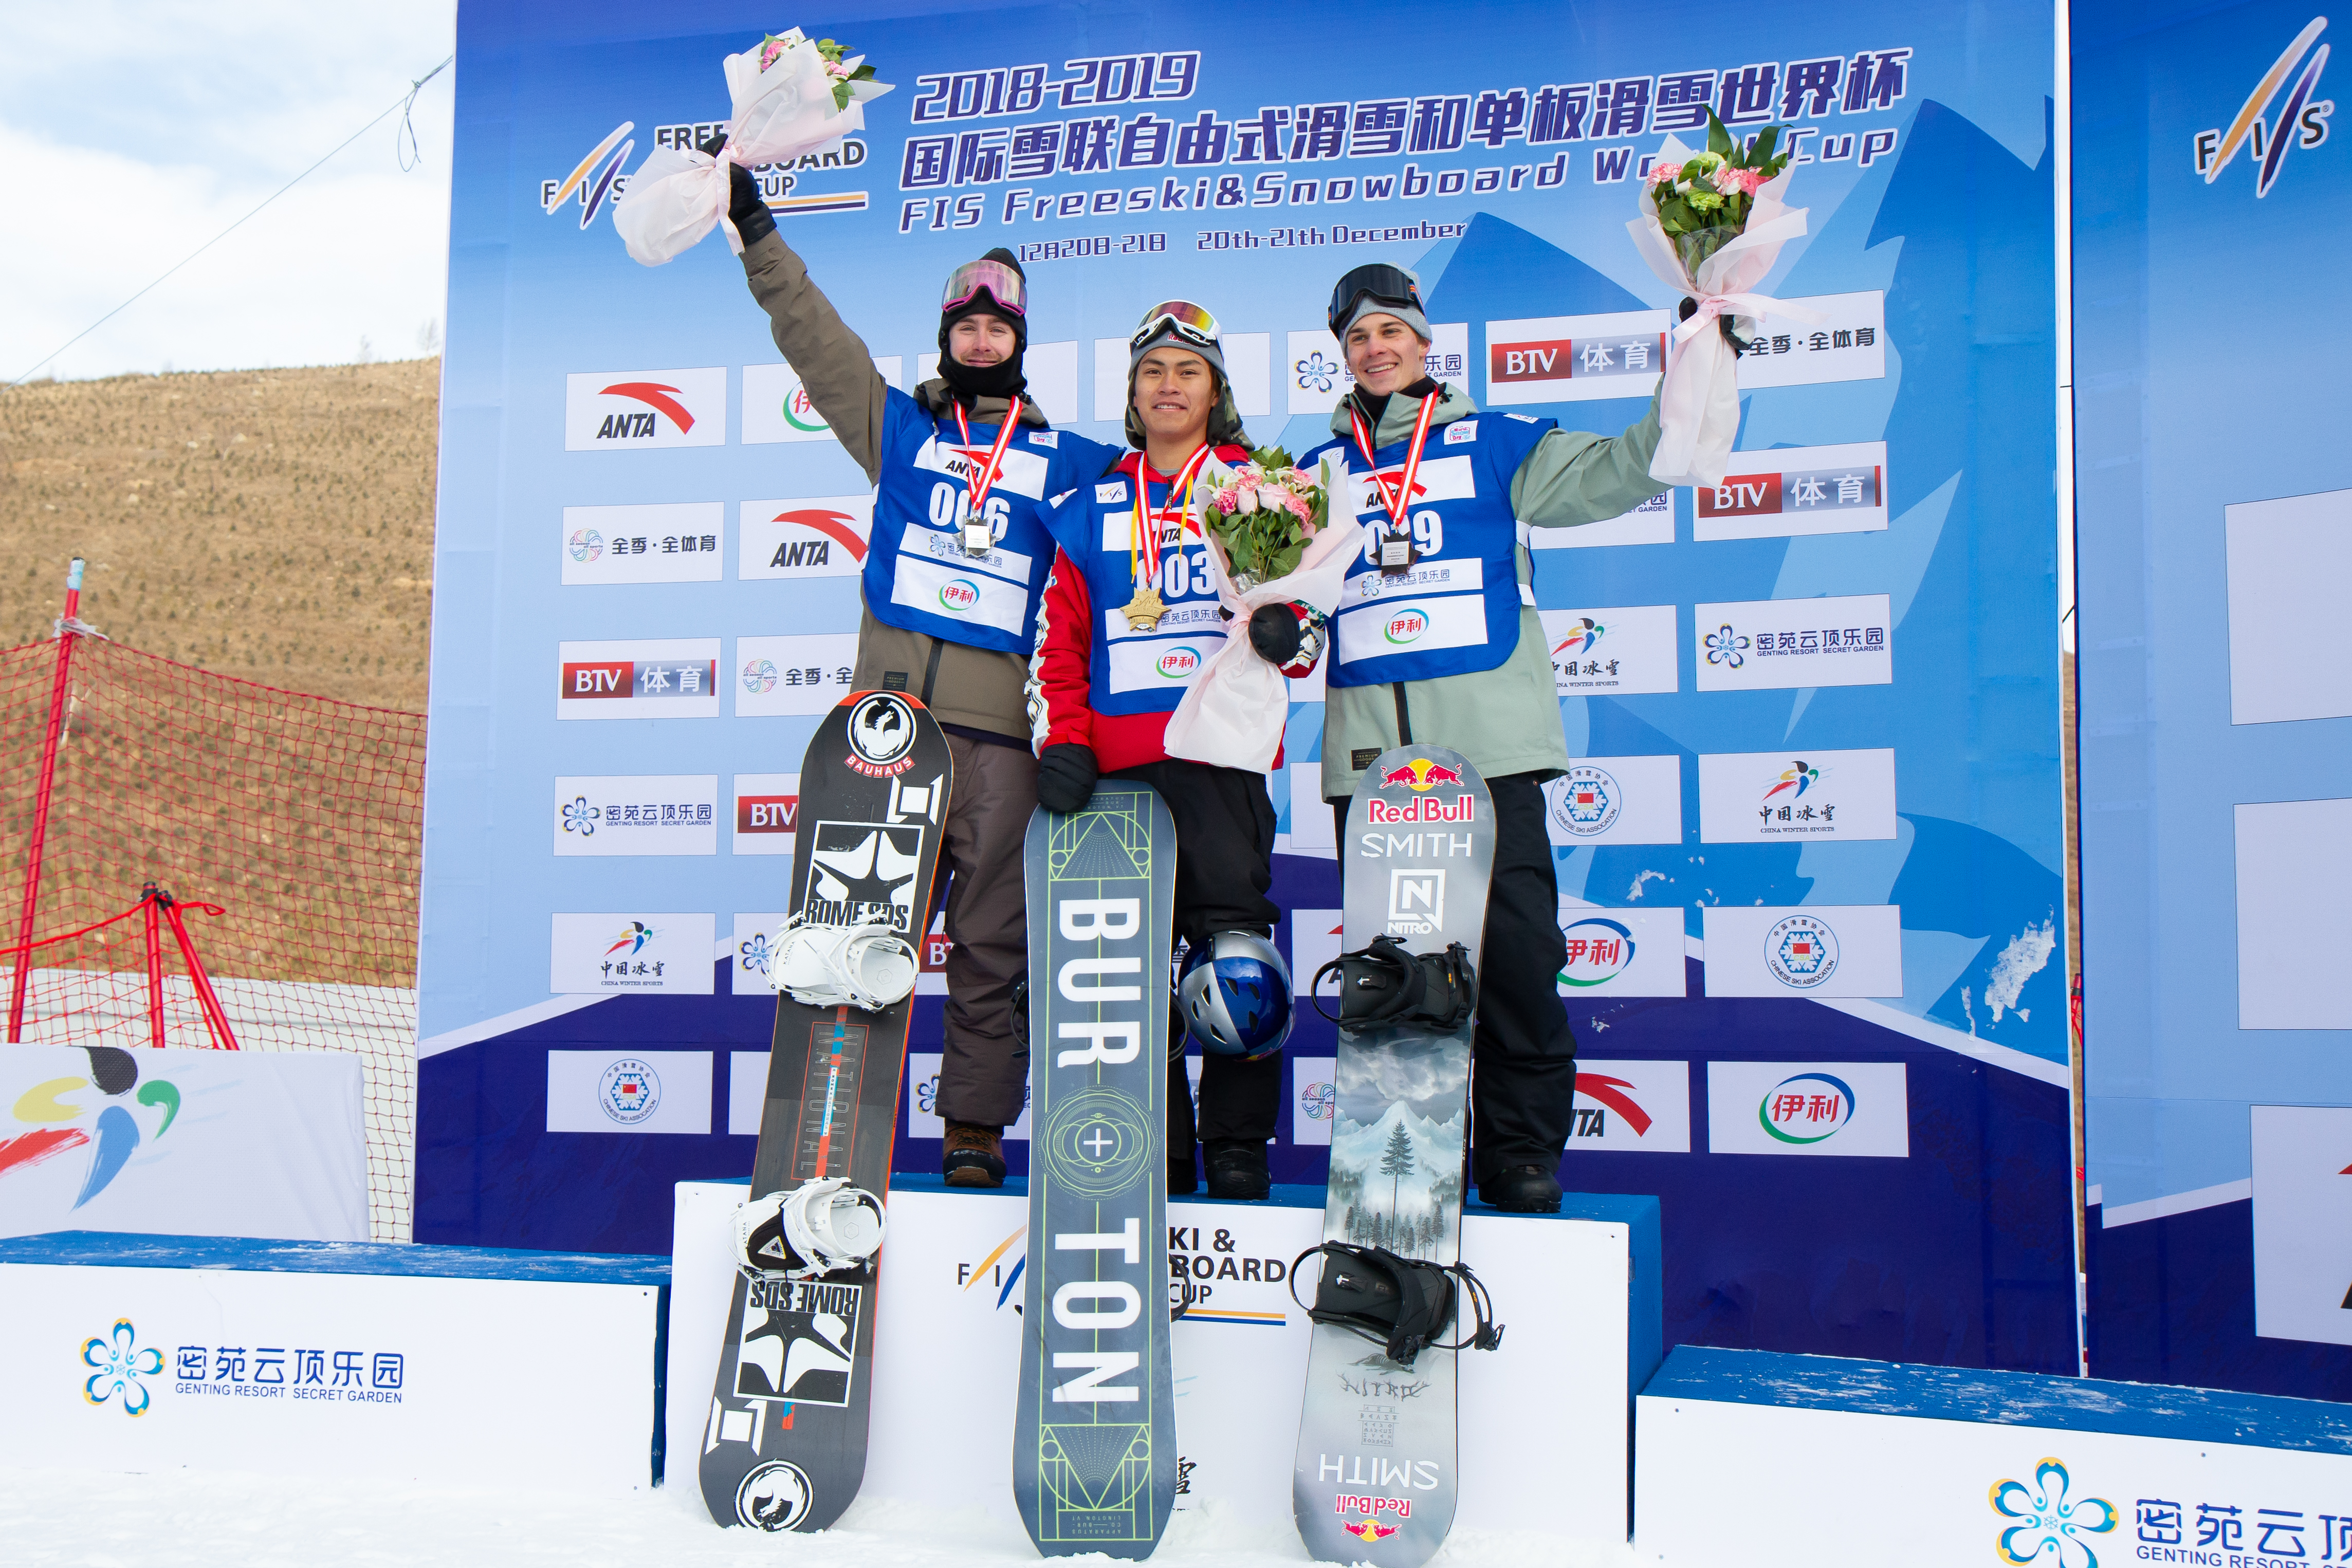 Takeru Otsuka on top of the podium at the FIS Secret Garden slopestyle World Cup event in China.